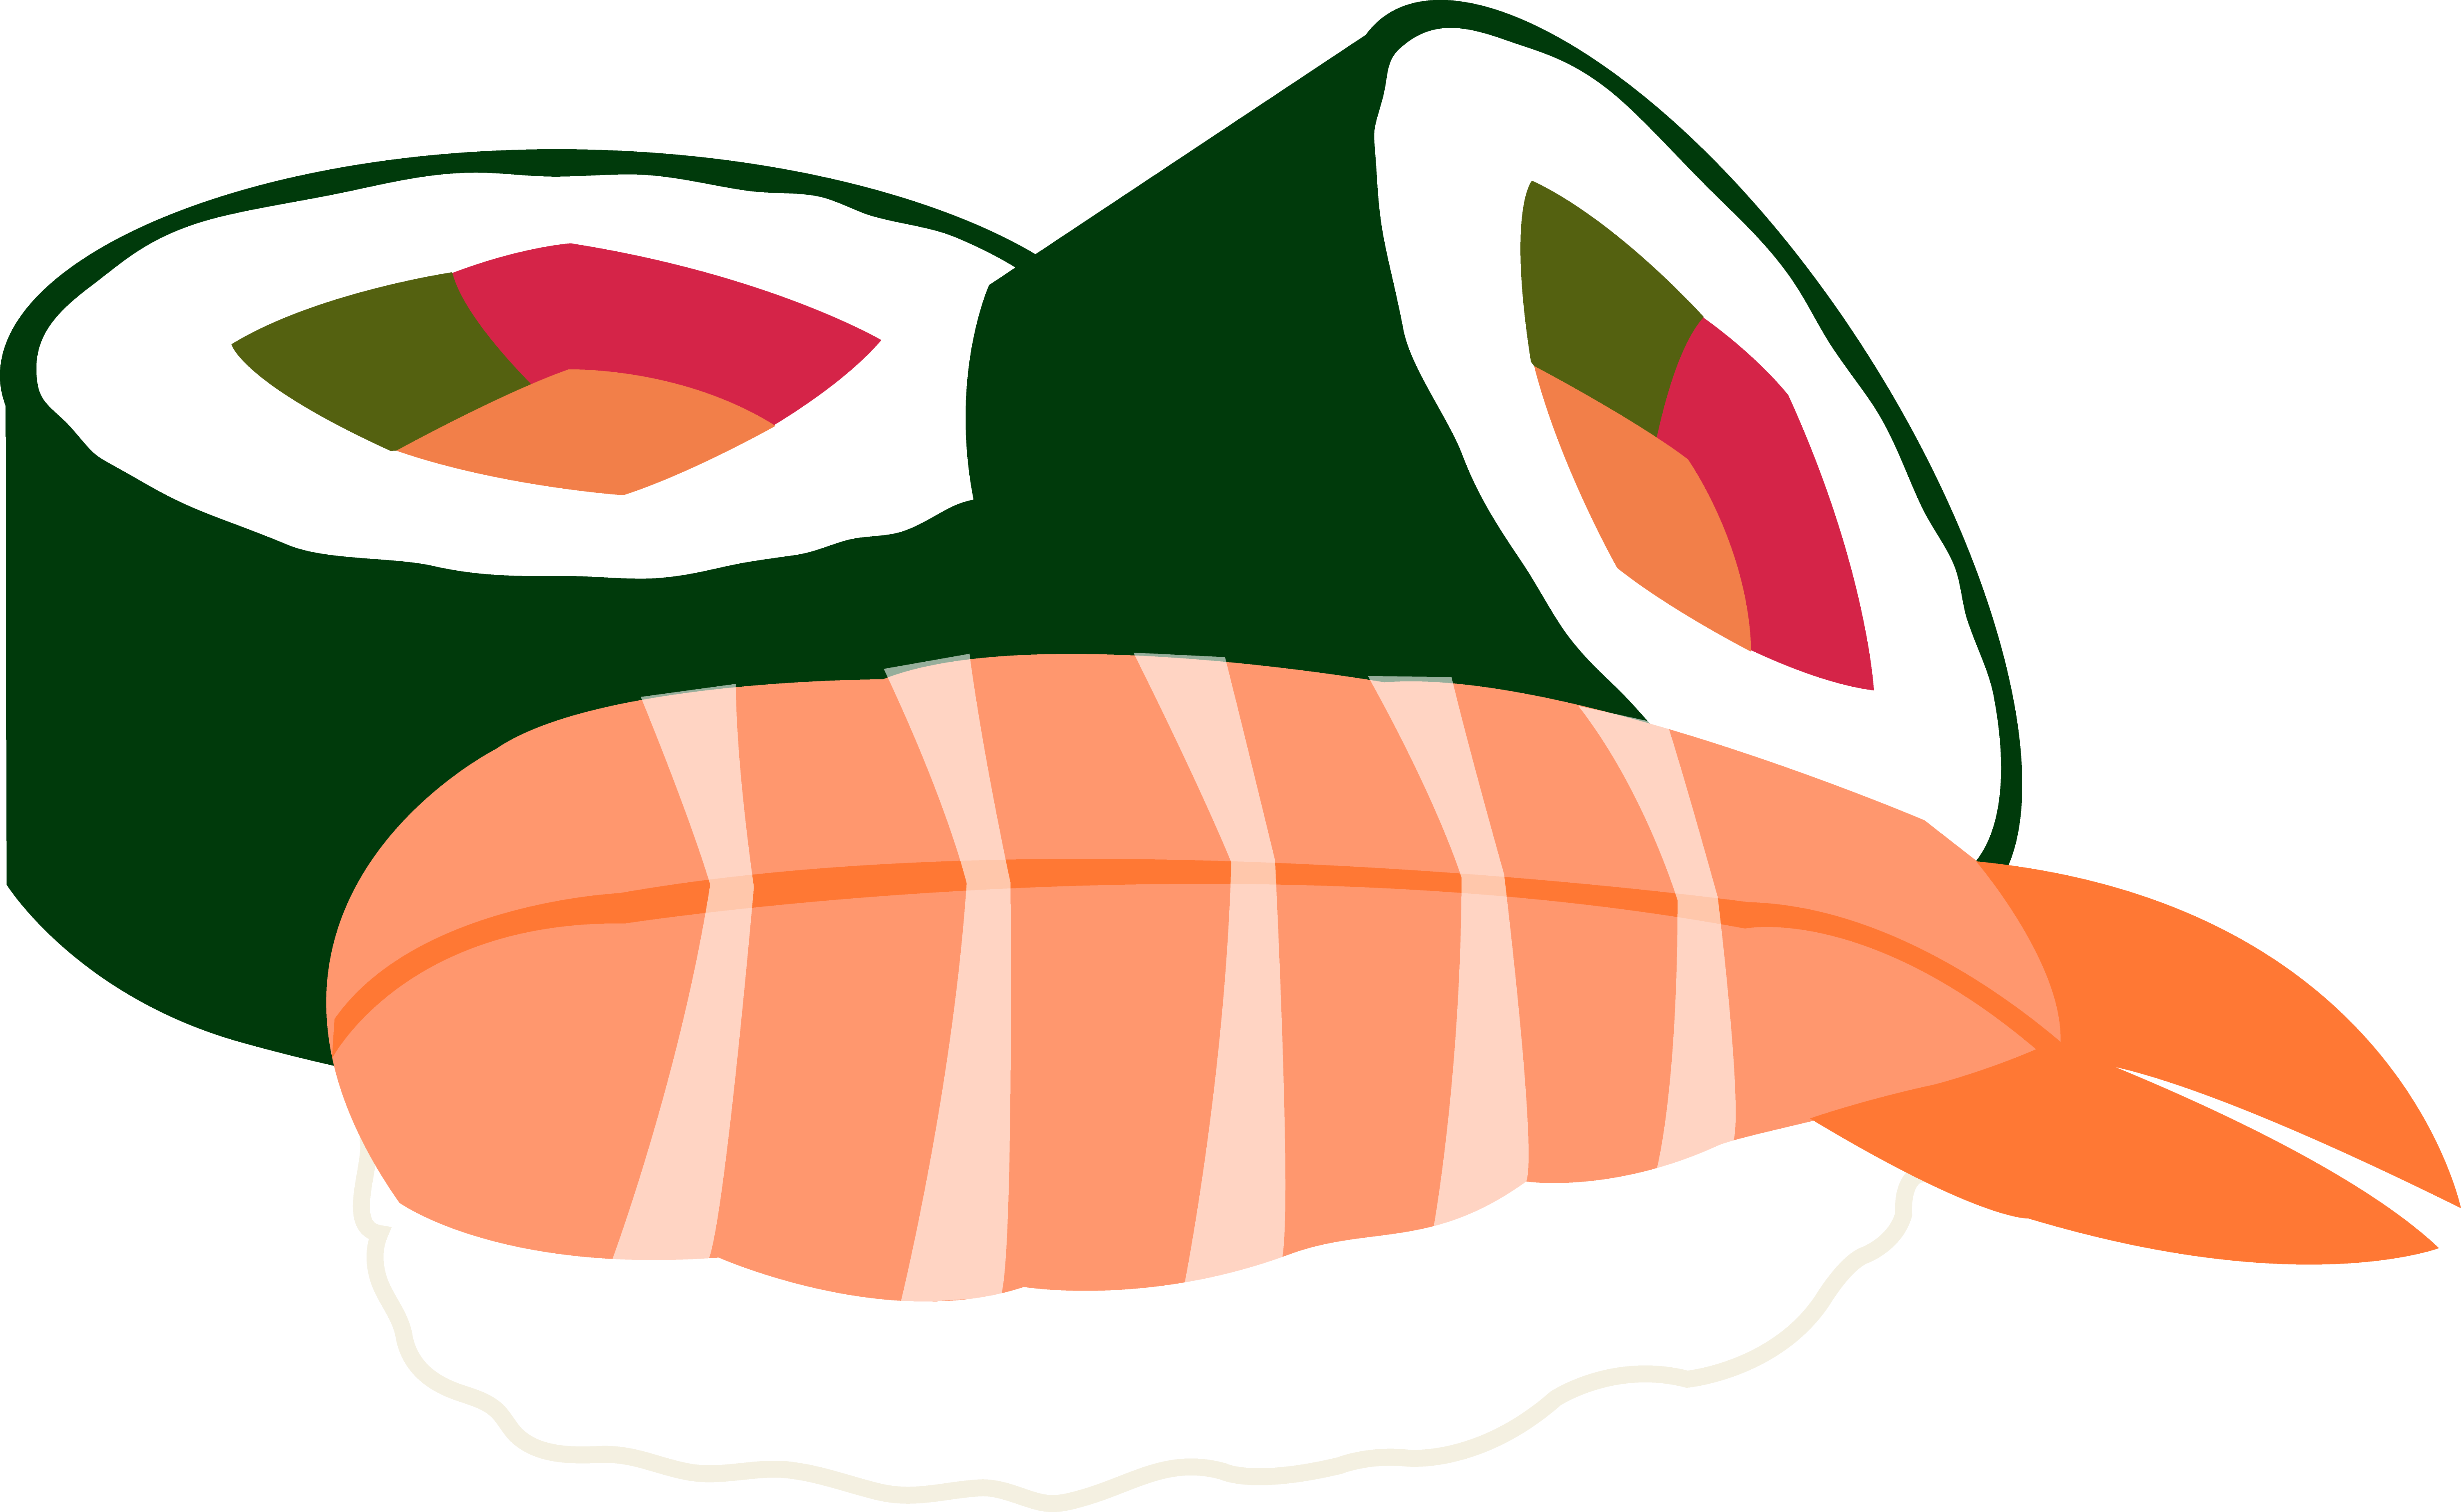 salmon clipart salmon food